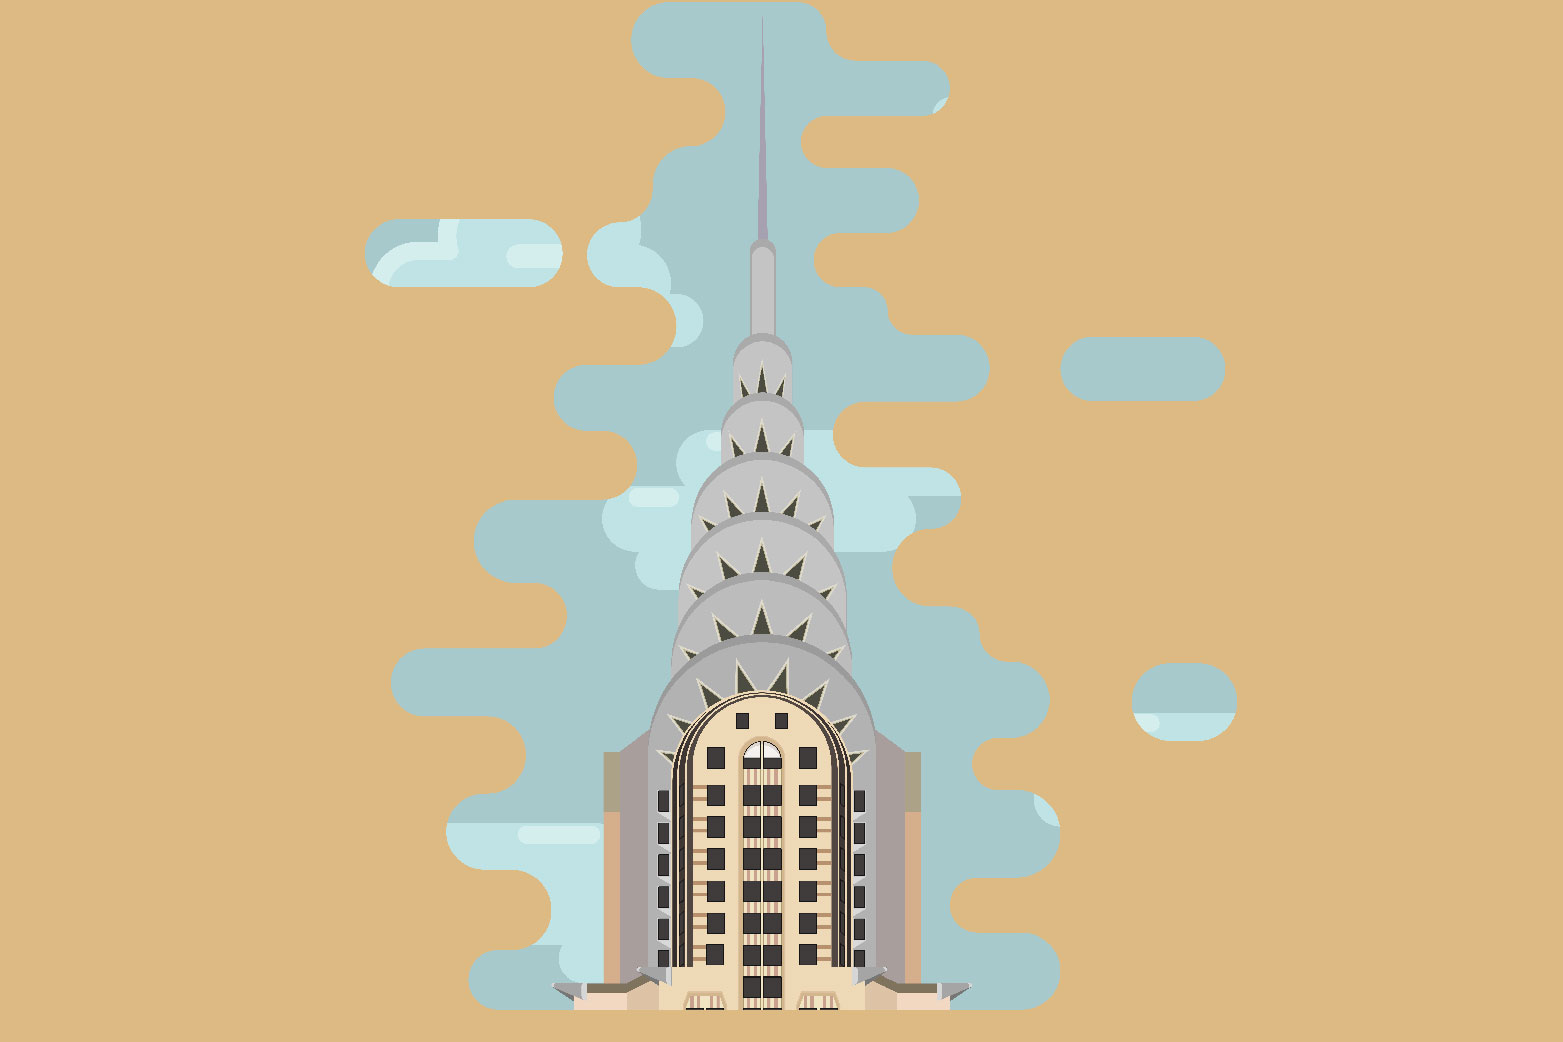 Word wide - Architectural landmarks illustrations example image 5